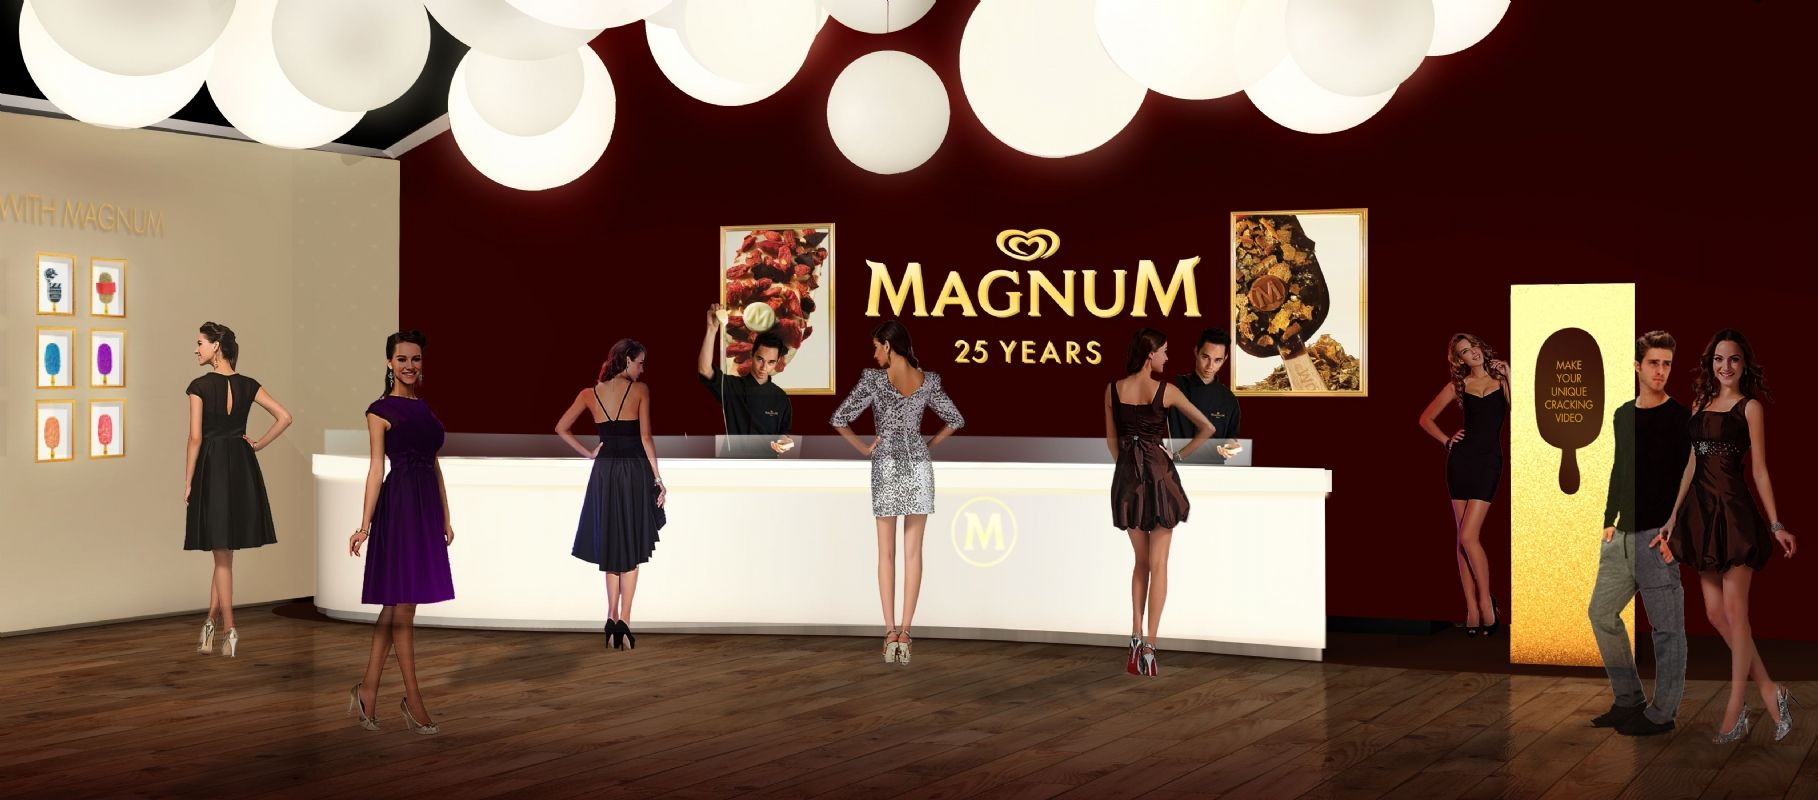 magnum unilever Magnum 12642460 likes 448 talking about this 7326 were here magnum, for pleasure seekers vie magnifique, a day without pleasure is a day lost.